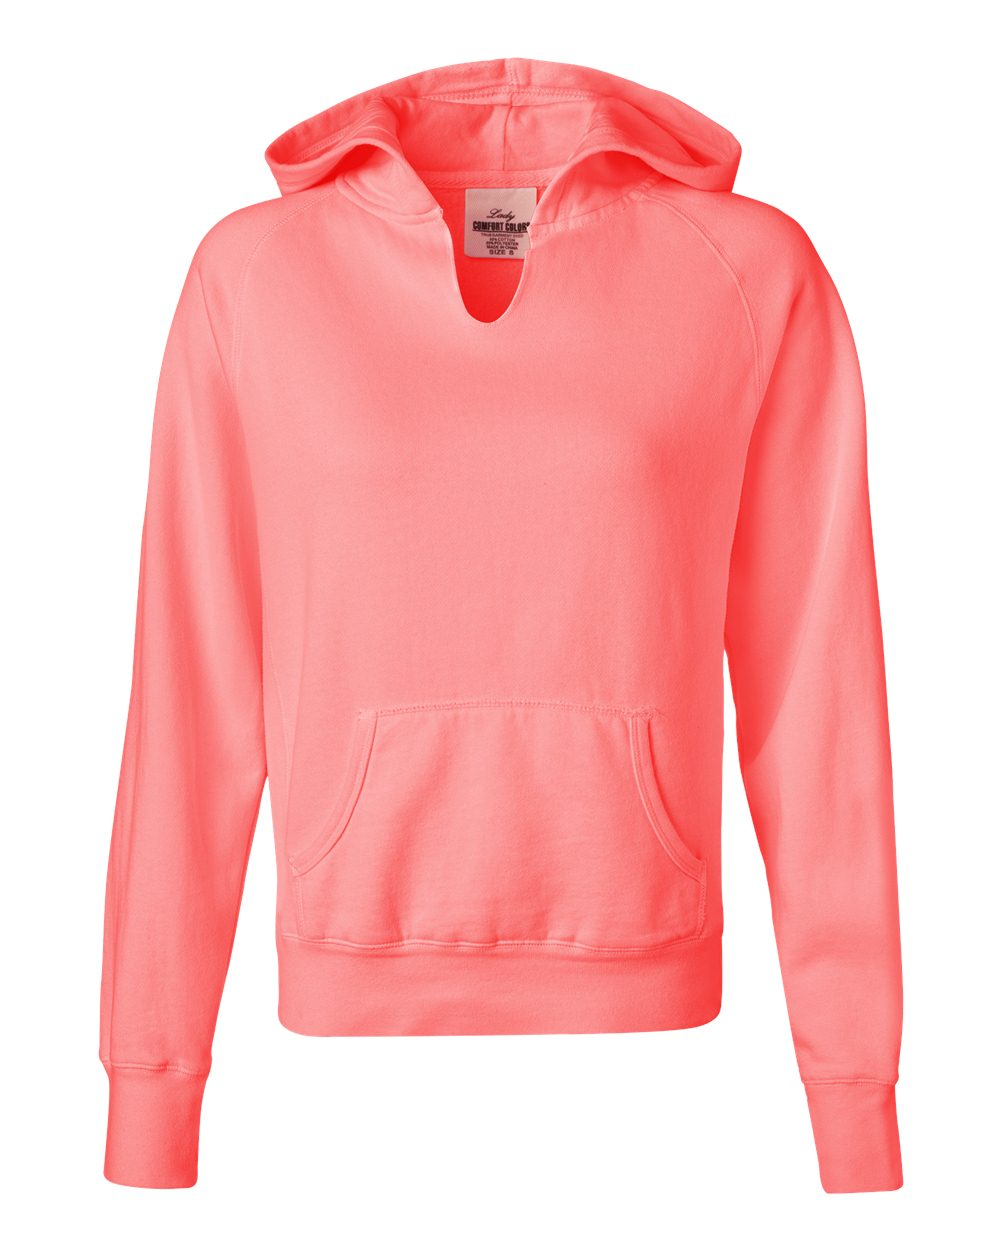 Monogrammed Ladies Hooded Comfort Colors Sweatshirt